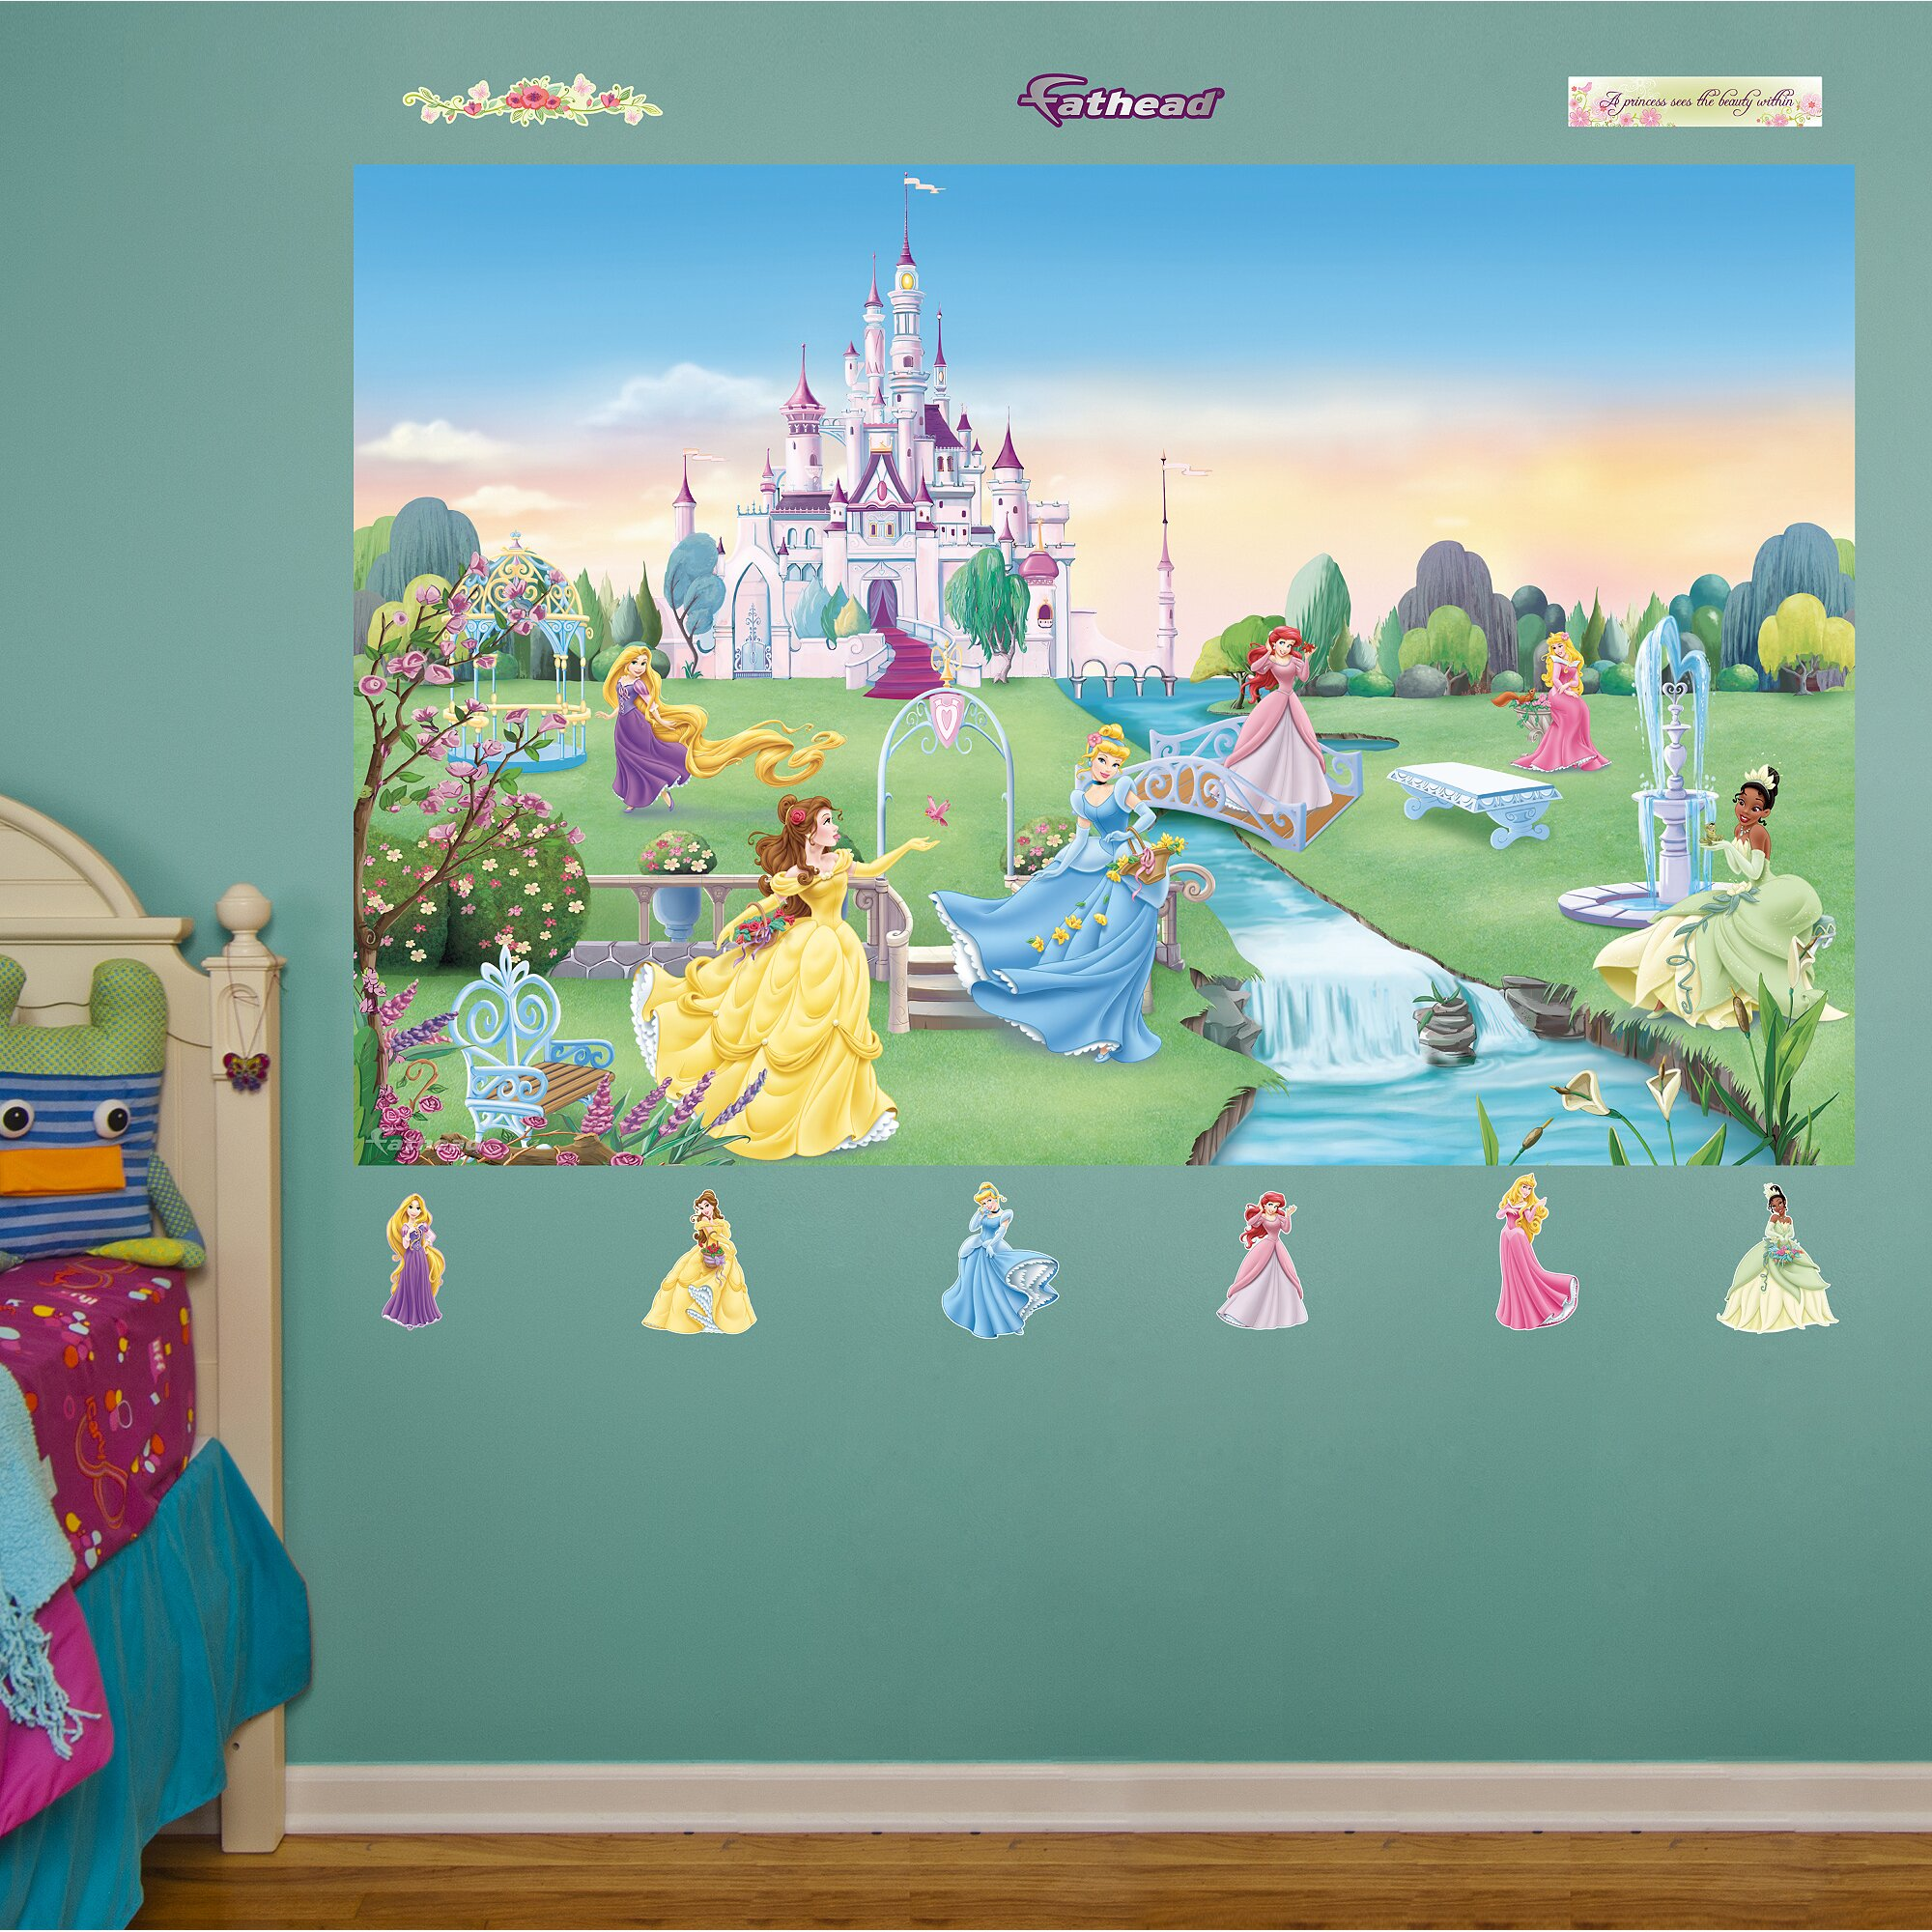 Fathead disney princess wall mural reviews wayfair for Disney princess mural asda